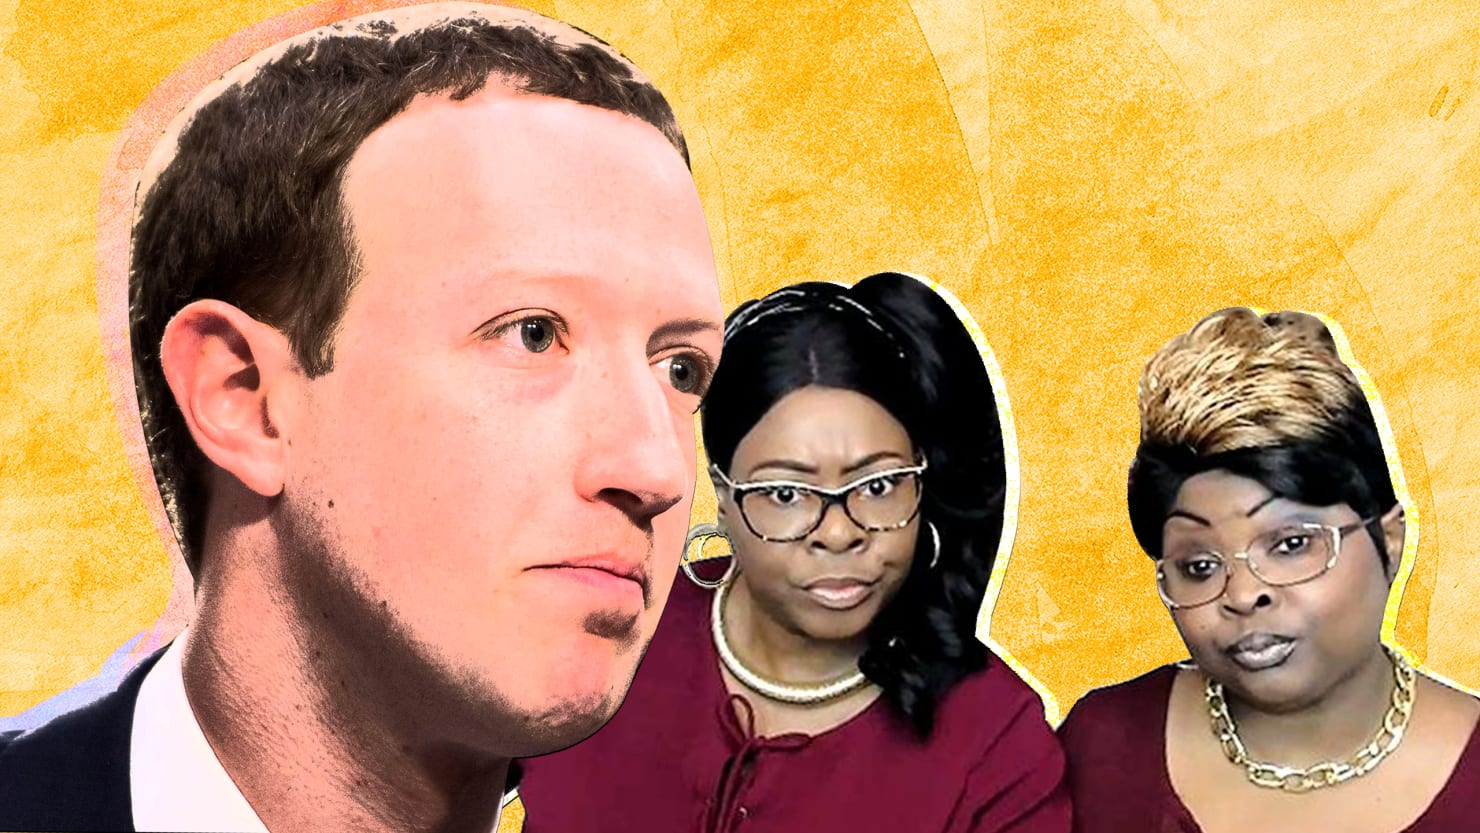 Diamond & Silk Claim Facebook Never Contacted Them. Facebook Emails Prove Otherwise.